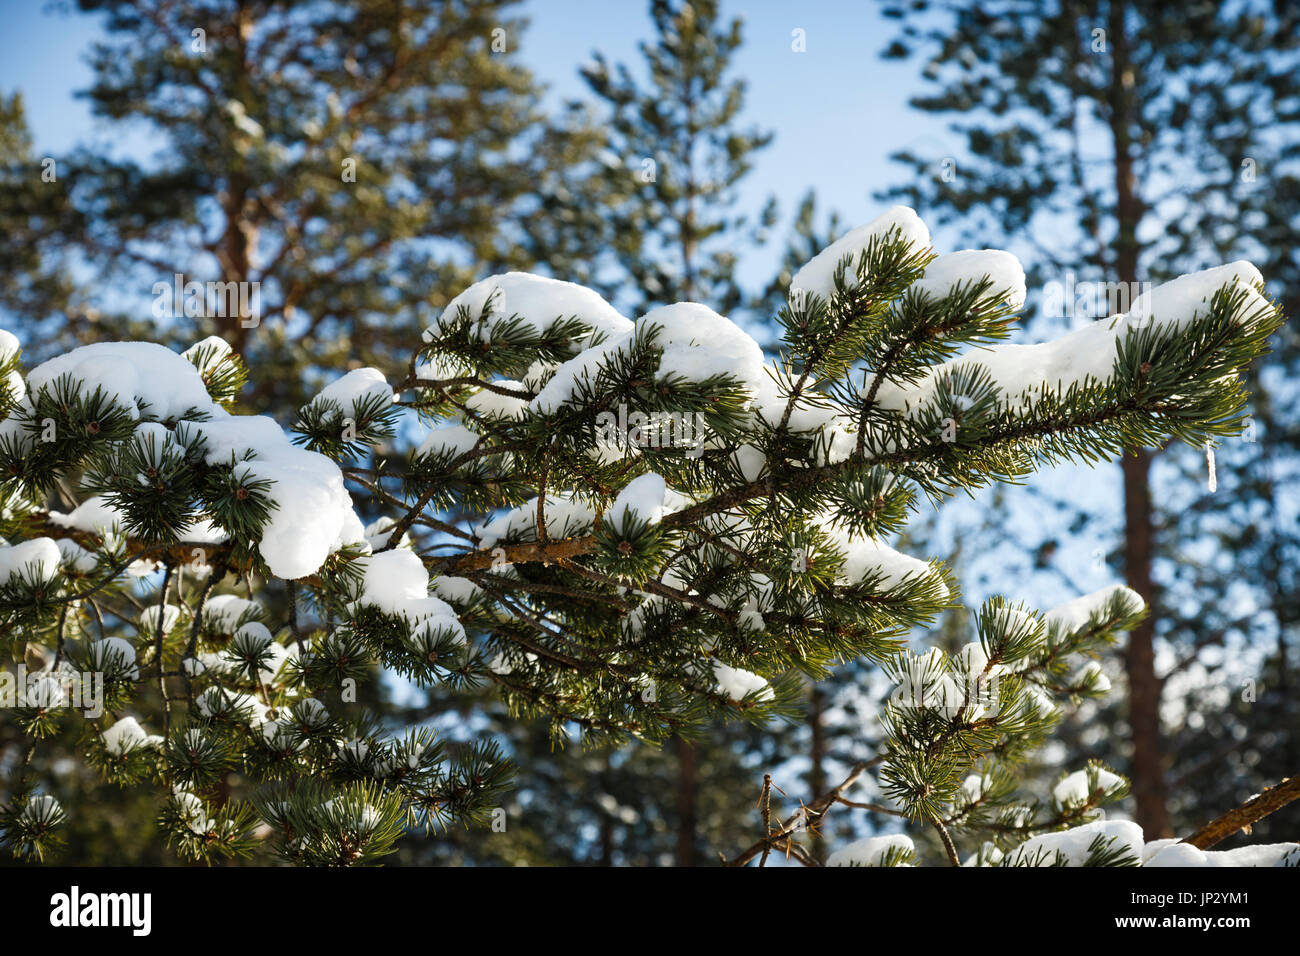 Picea Abies Norway Spruce Christmas Stock Photos & Picea